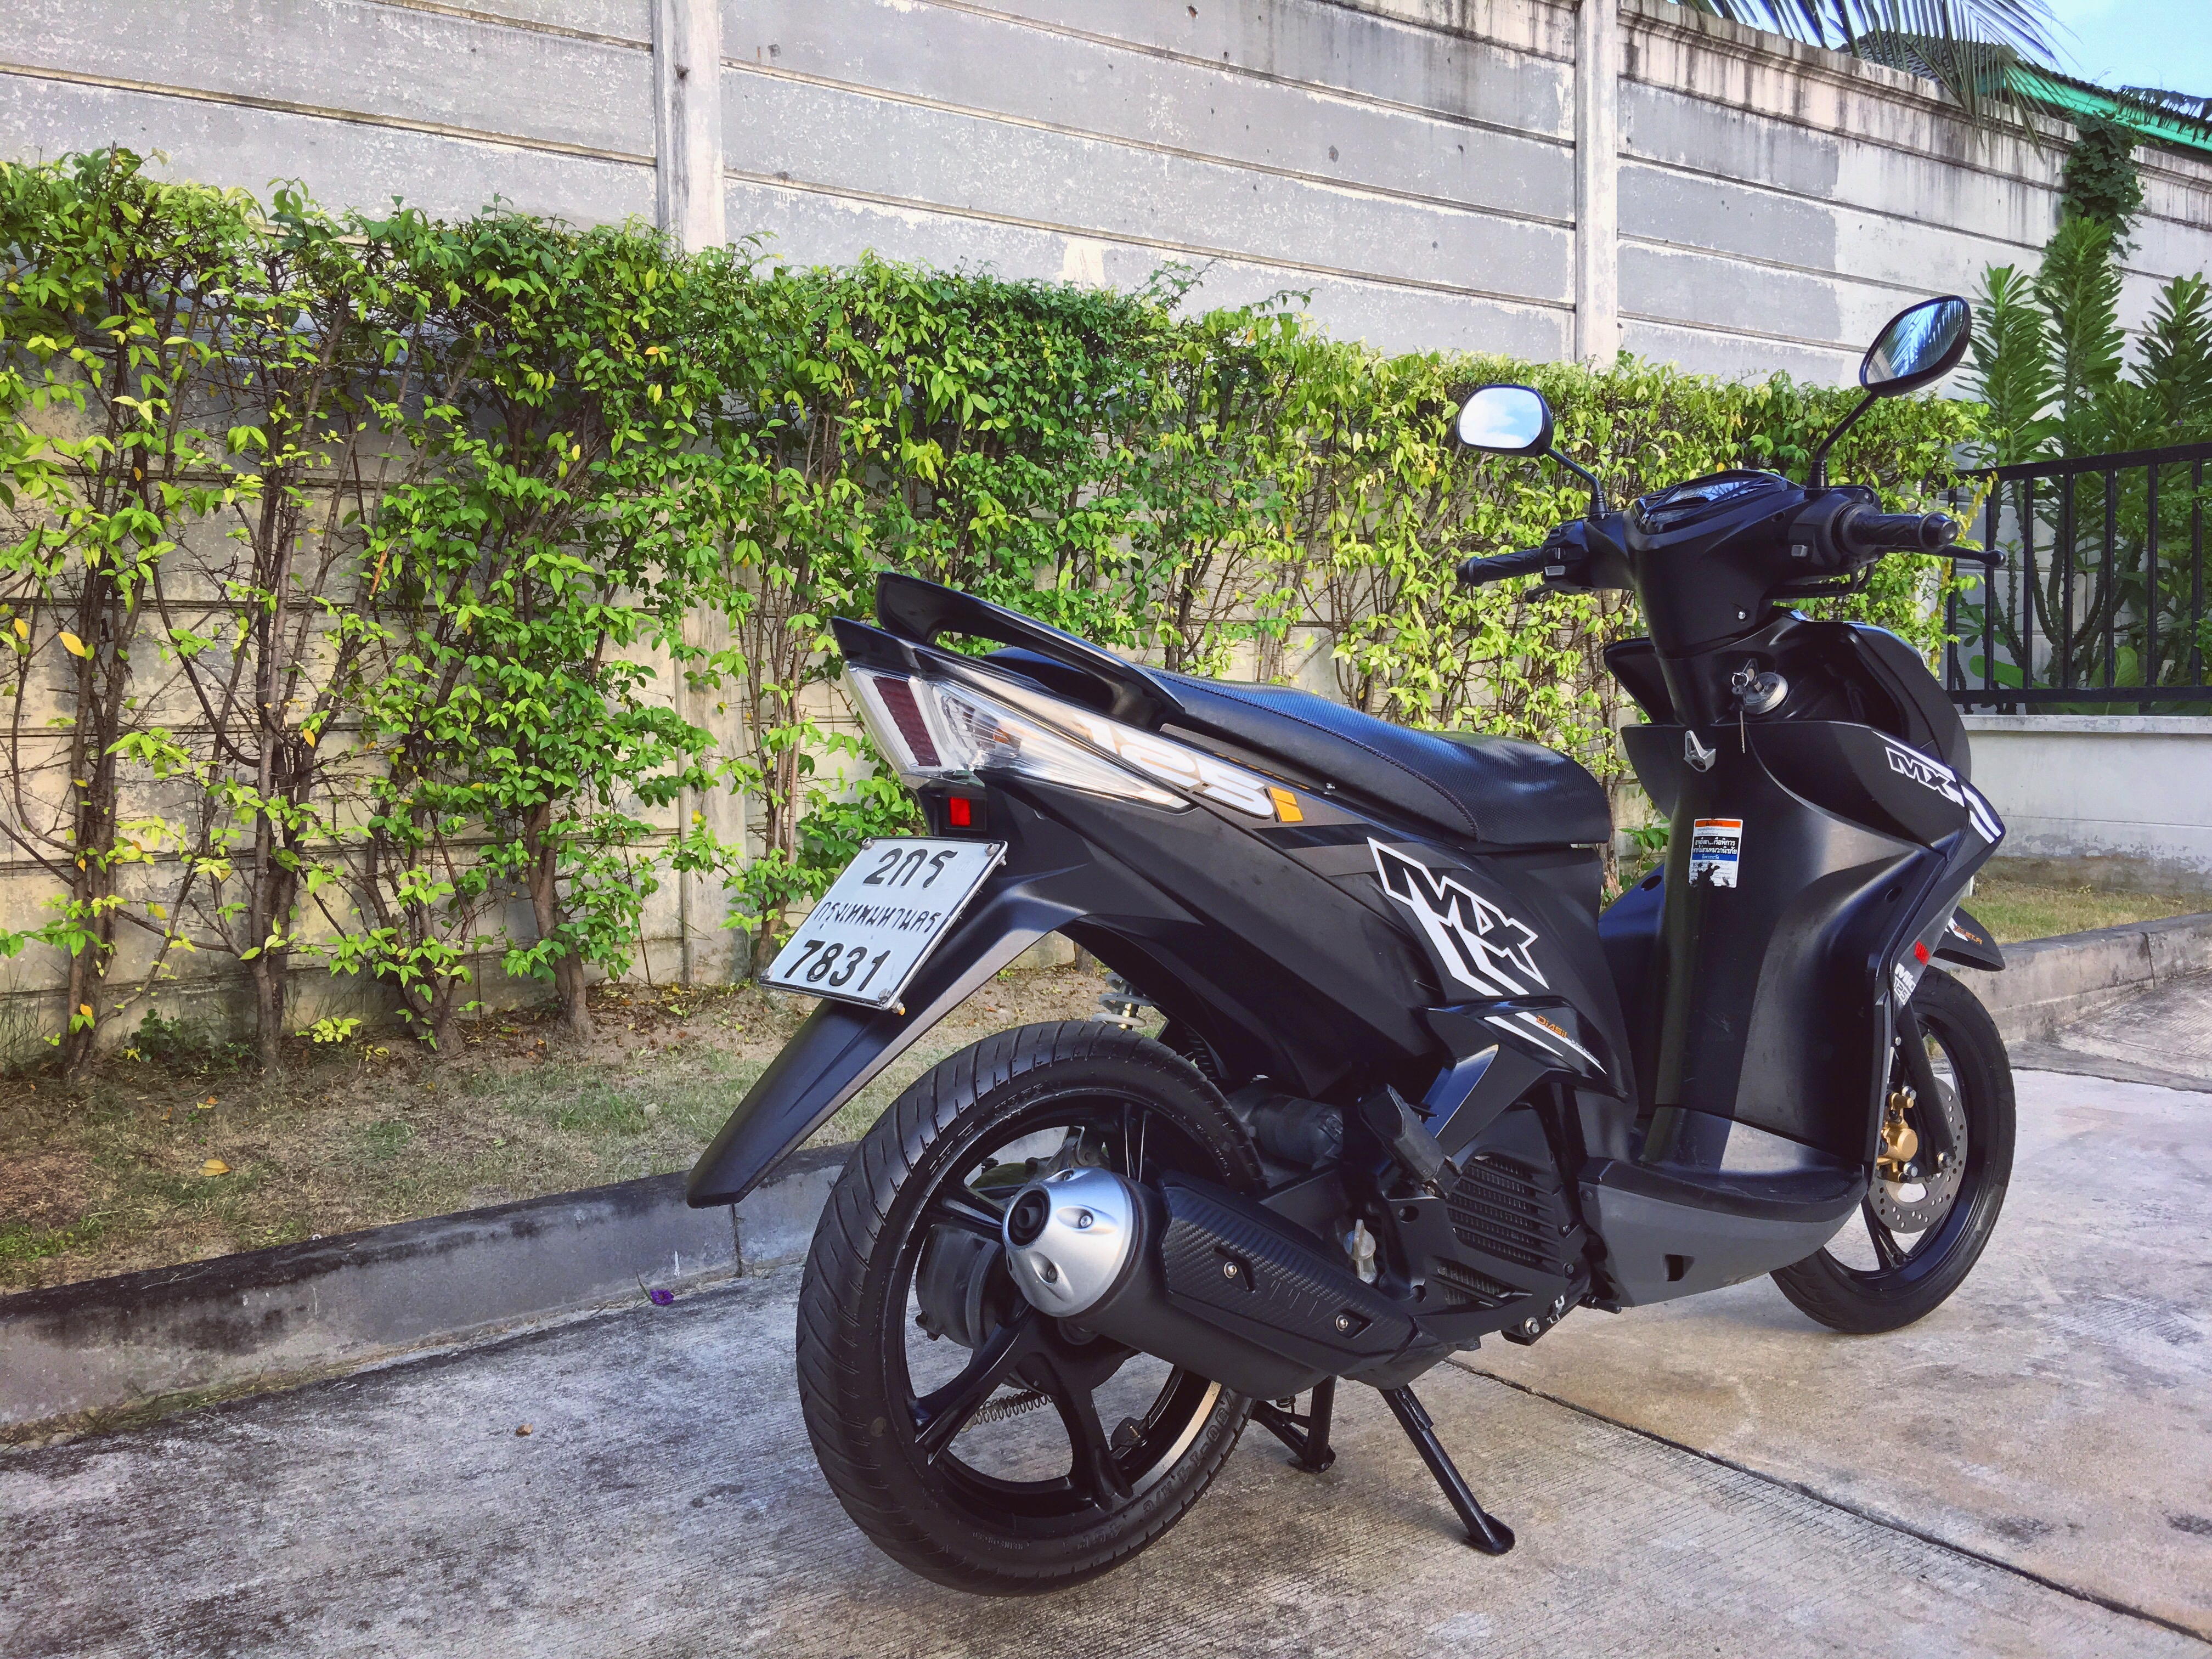 2014 yamaha mio mx 125i bikes for sale in thailand for Yamaha mx 80 for sale